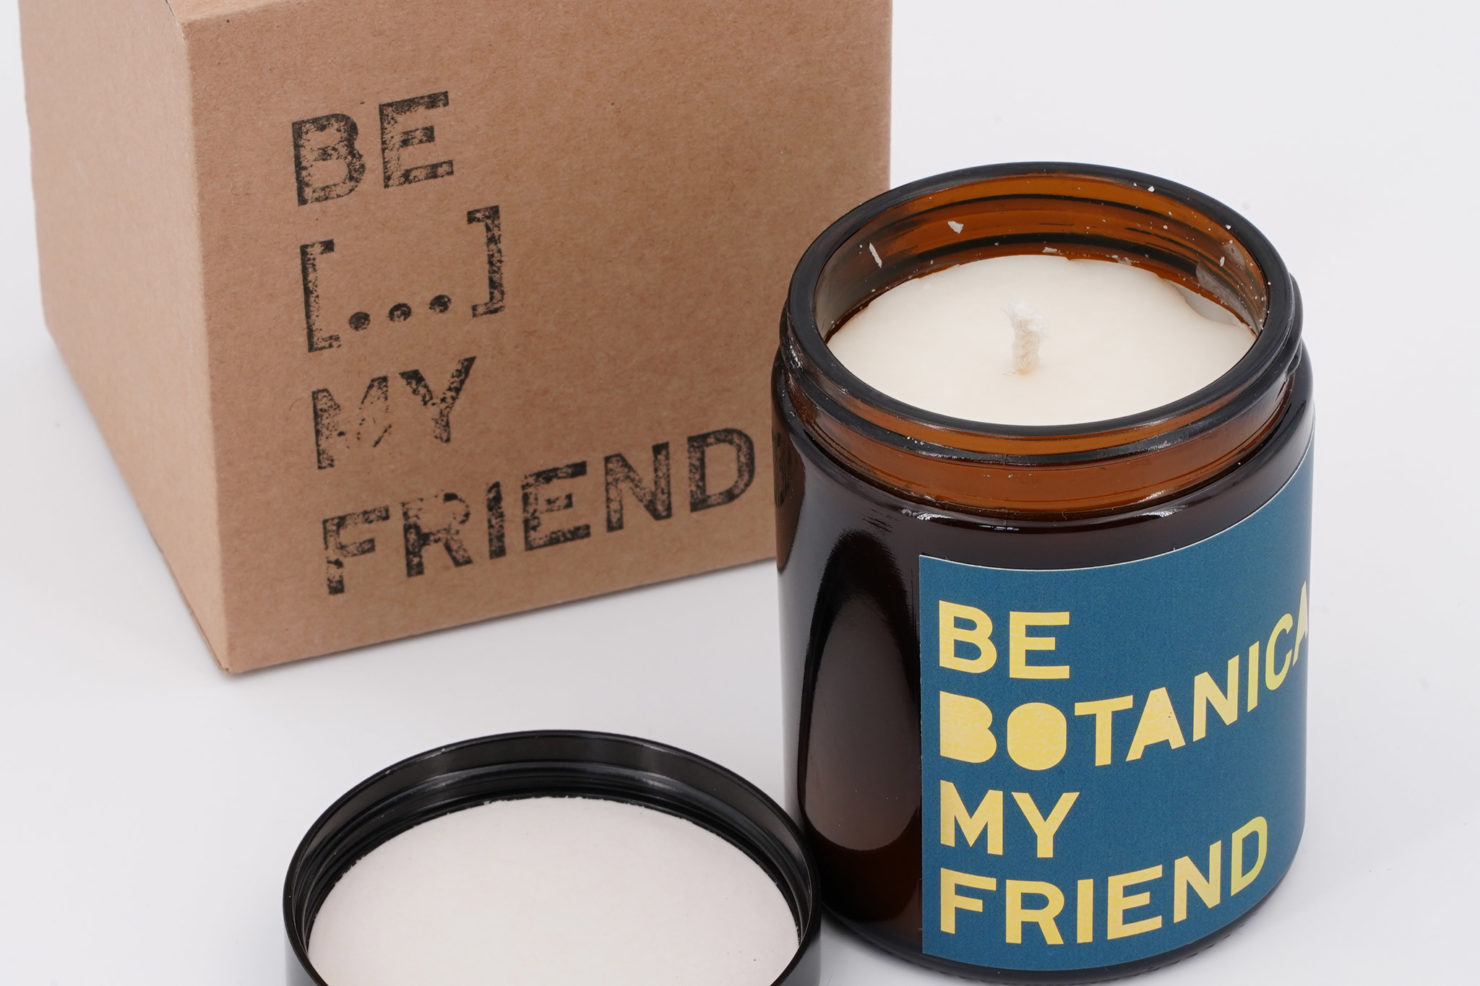 BE LIT&SCENT MY FRIEND BOTANICAL 180ML OPEN BE MY FRIEND